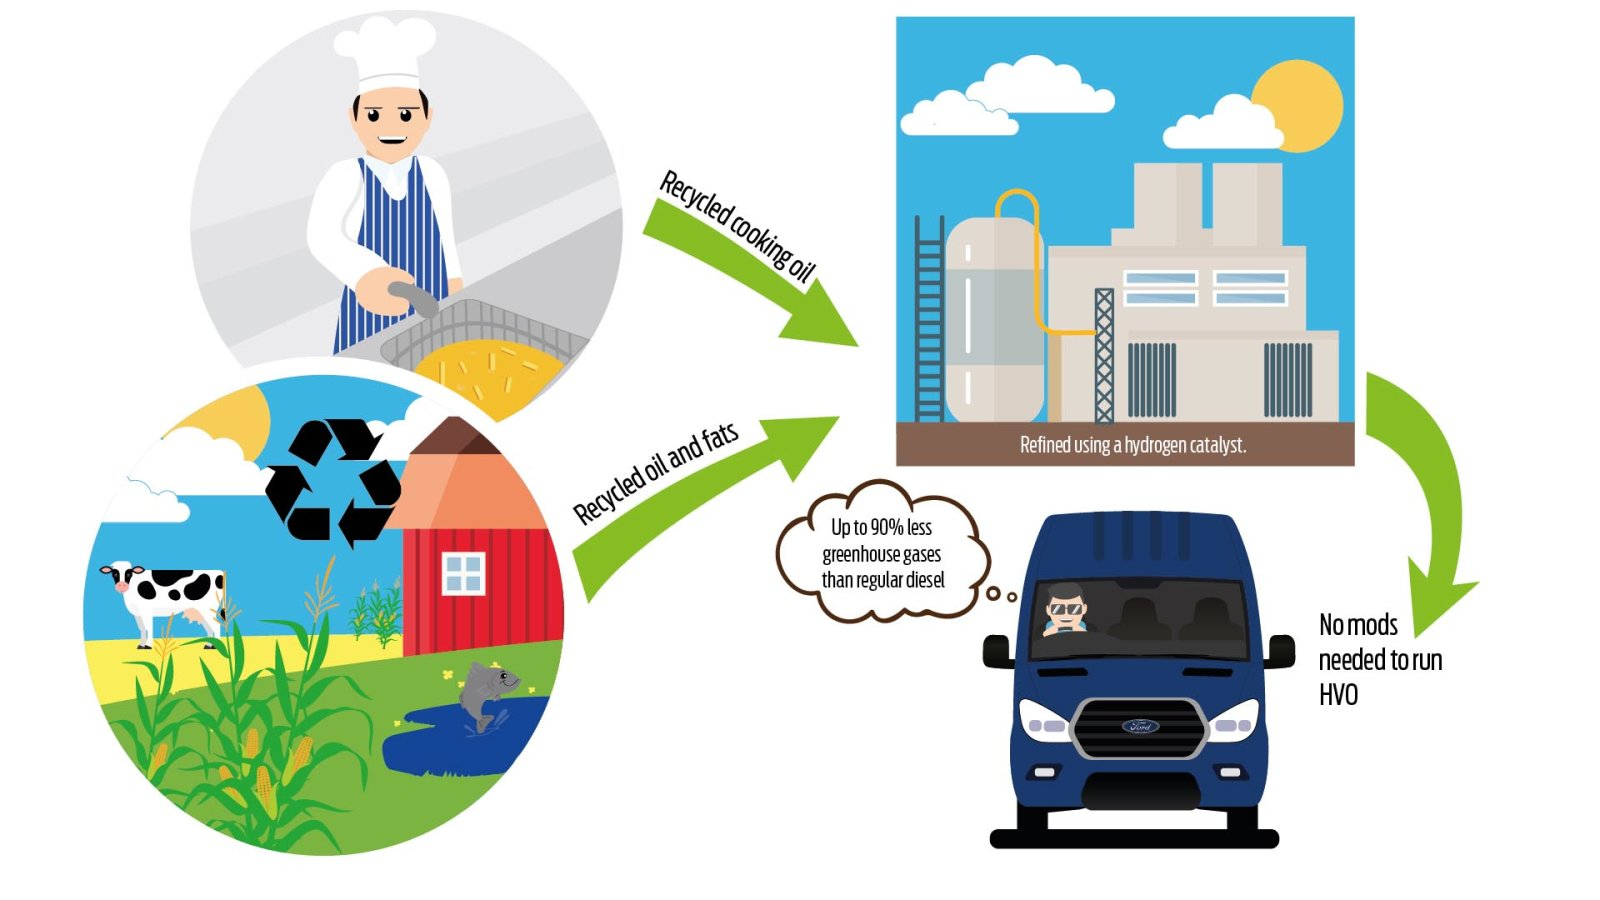 Ford Europe's Transportation vans can currently work on business grease